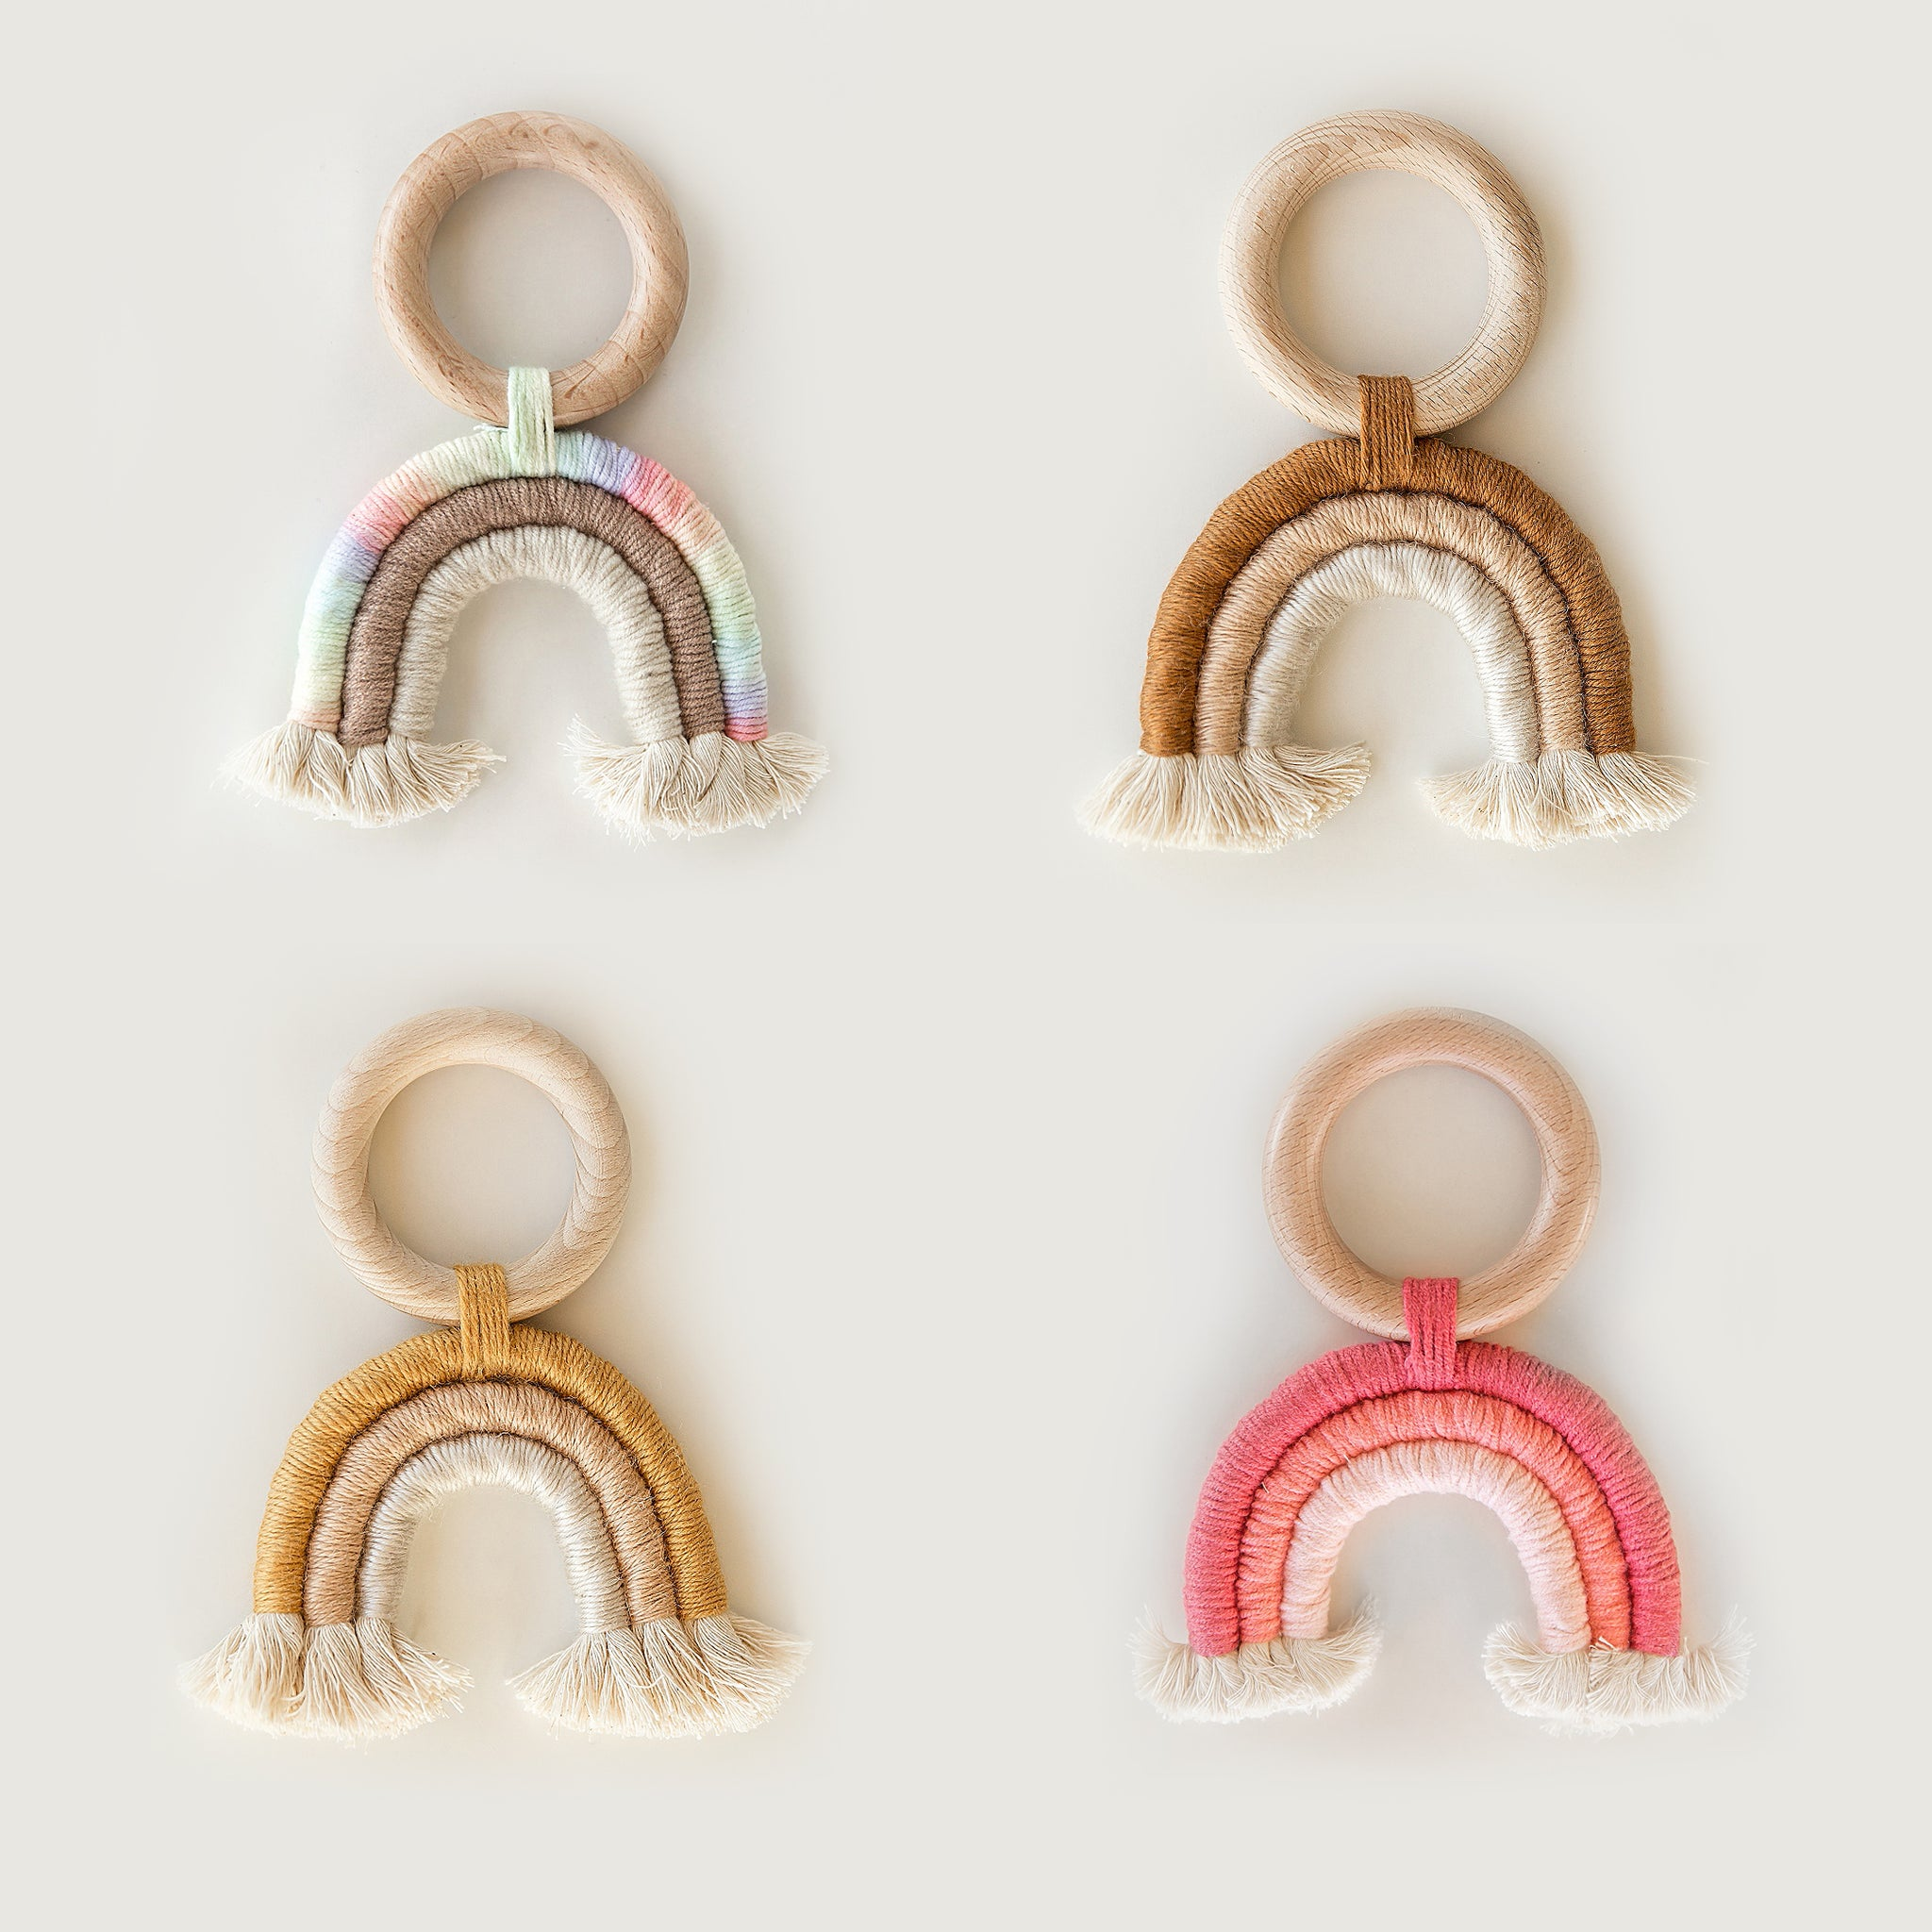 Wooden Macrame Rainbow Teether Toy in Muted Rainbow - Reverie Threads